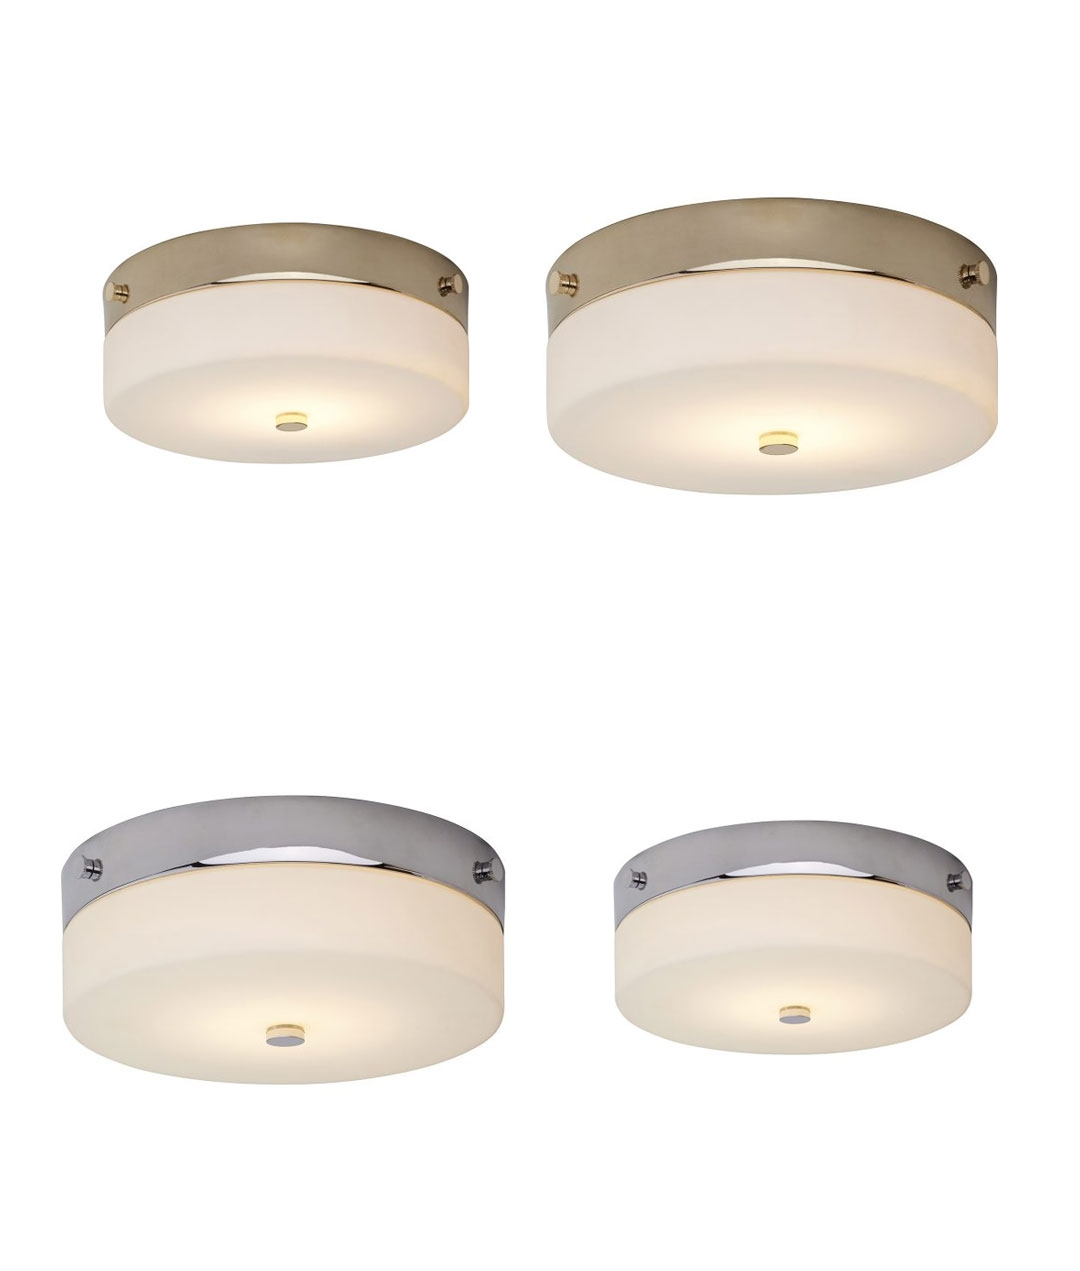 Picture of: Bathroom Semi Flush Ceiling Light Ip44 Rated In Gold Or Chrome